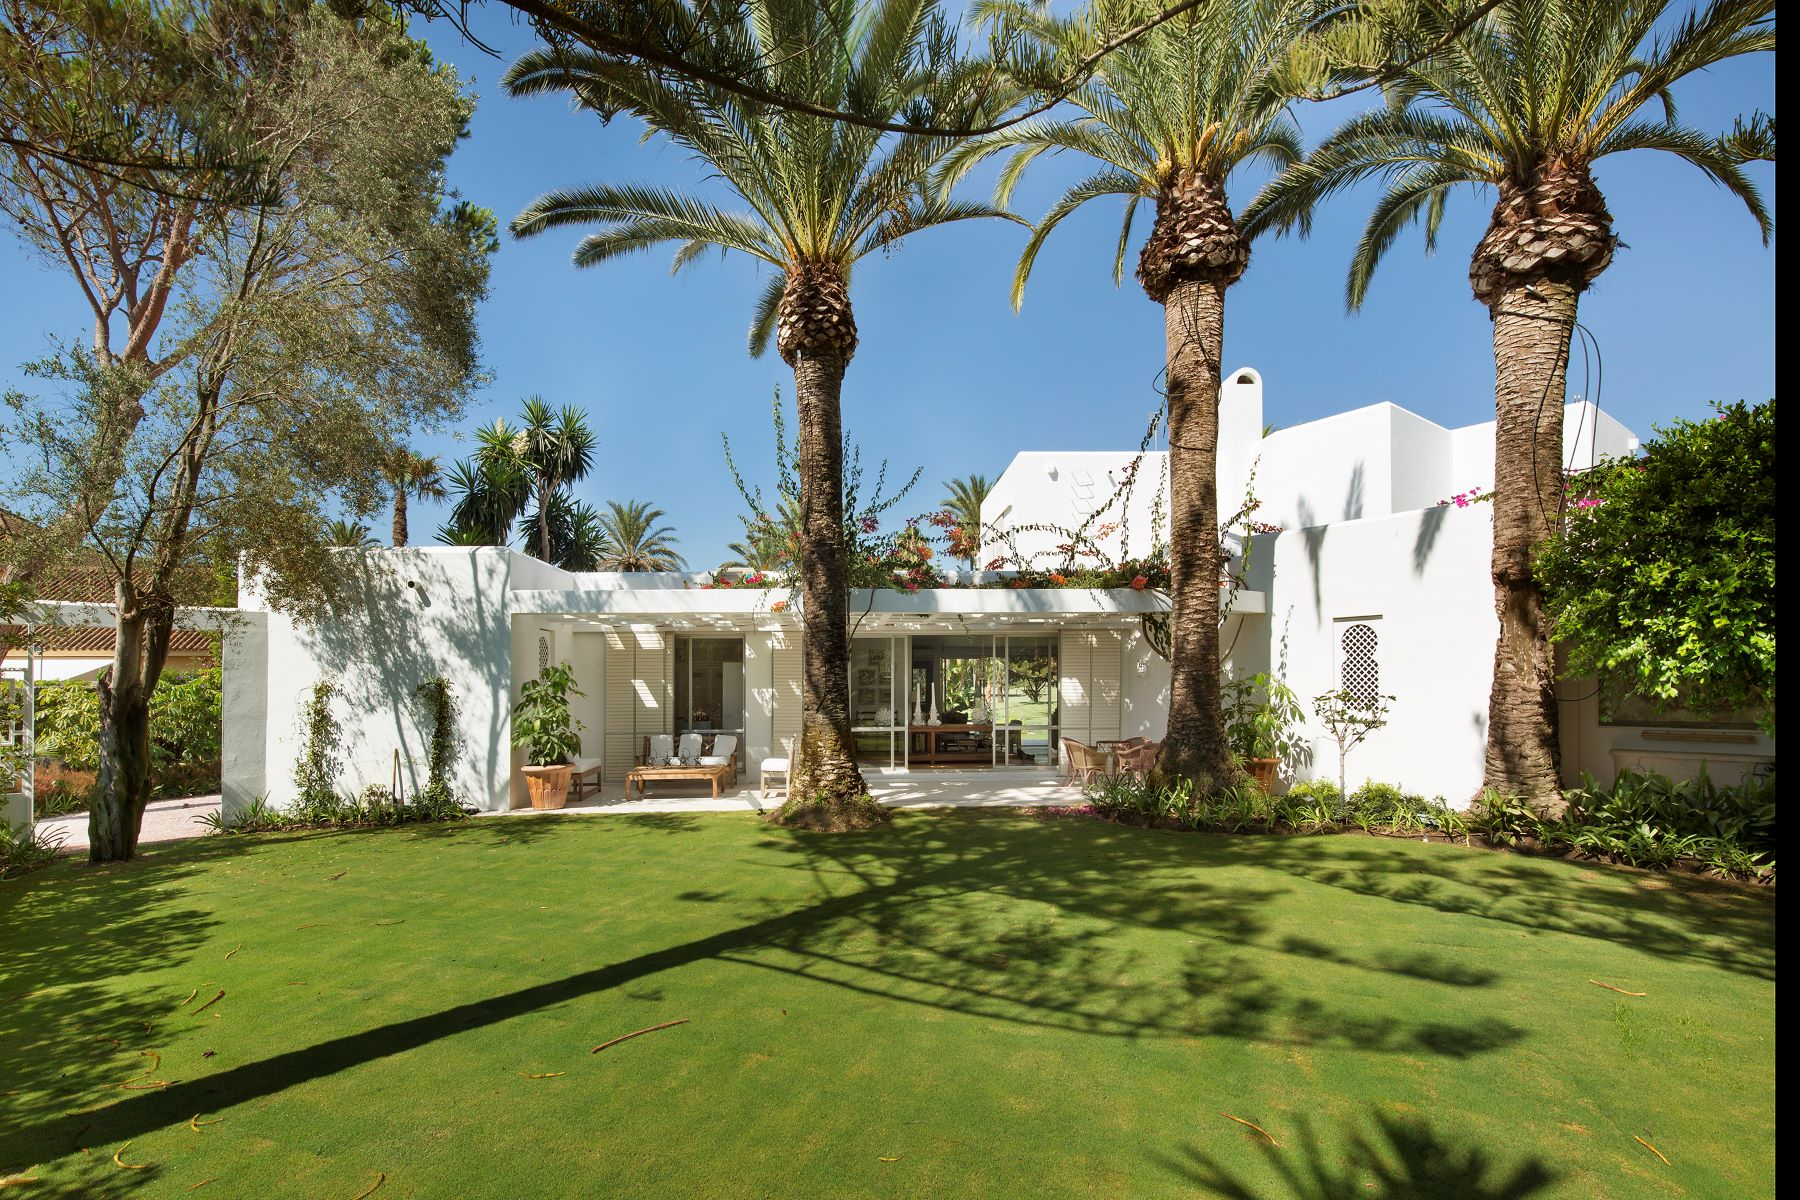 Single Family Home for Sale at La Concha Blanca Reyes y Reinas, Sotogrande, Andalucia, 11310 Spain